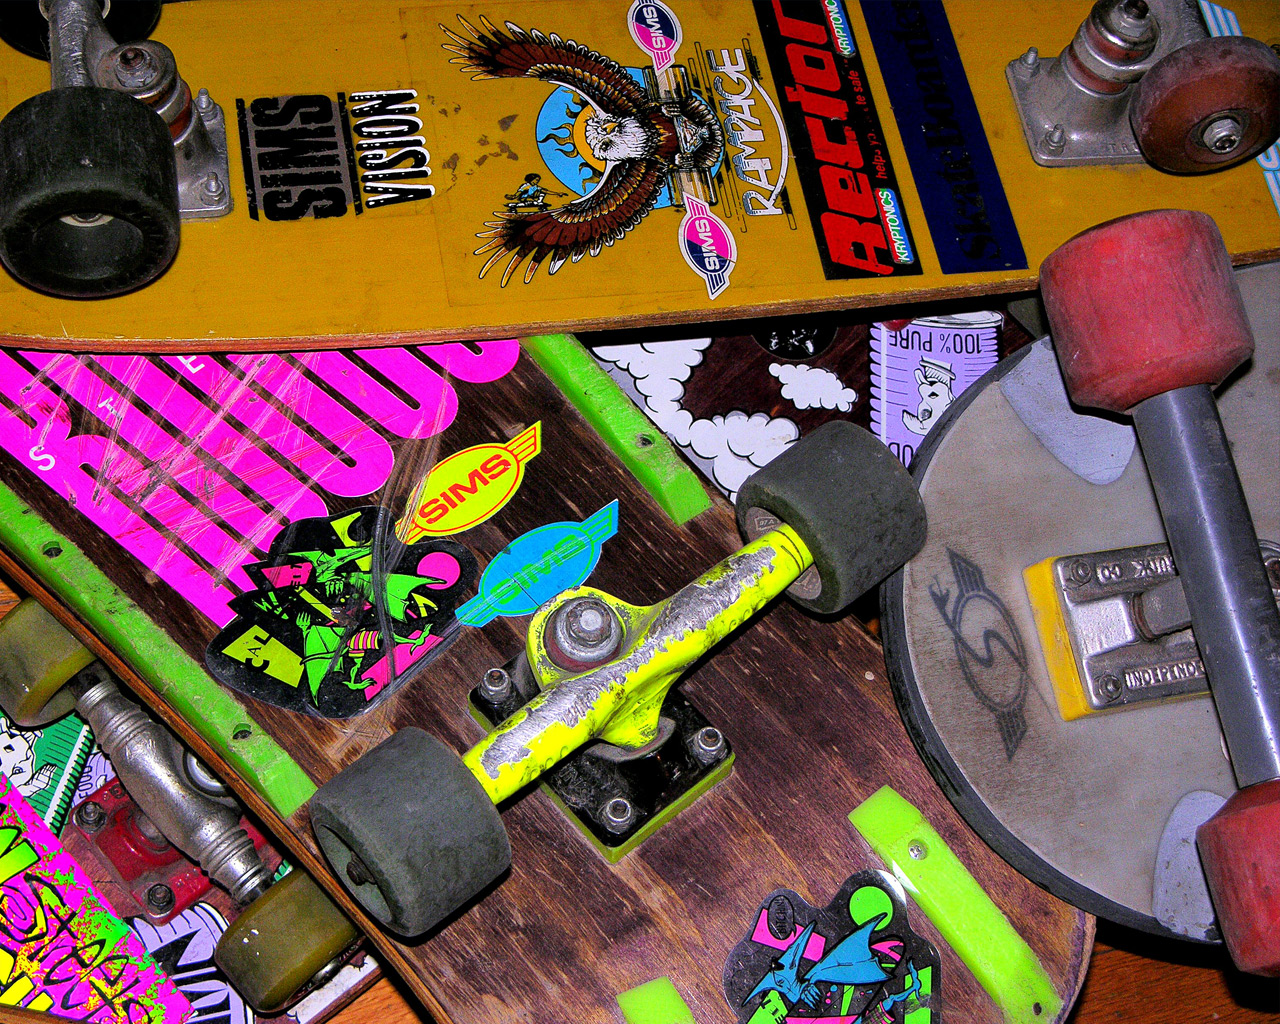 Shop Over 30 years of Skate History - 55 Vintage Skateboard Wallpapers